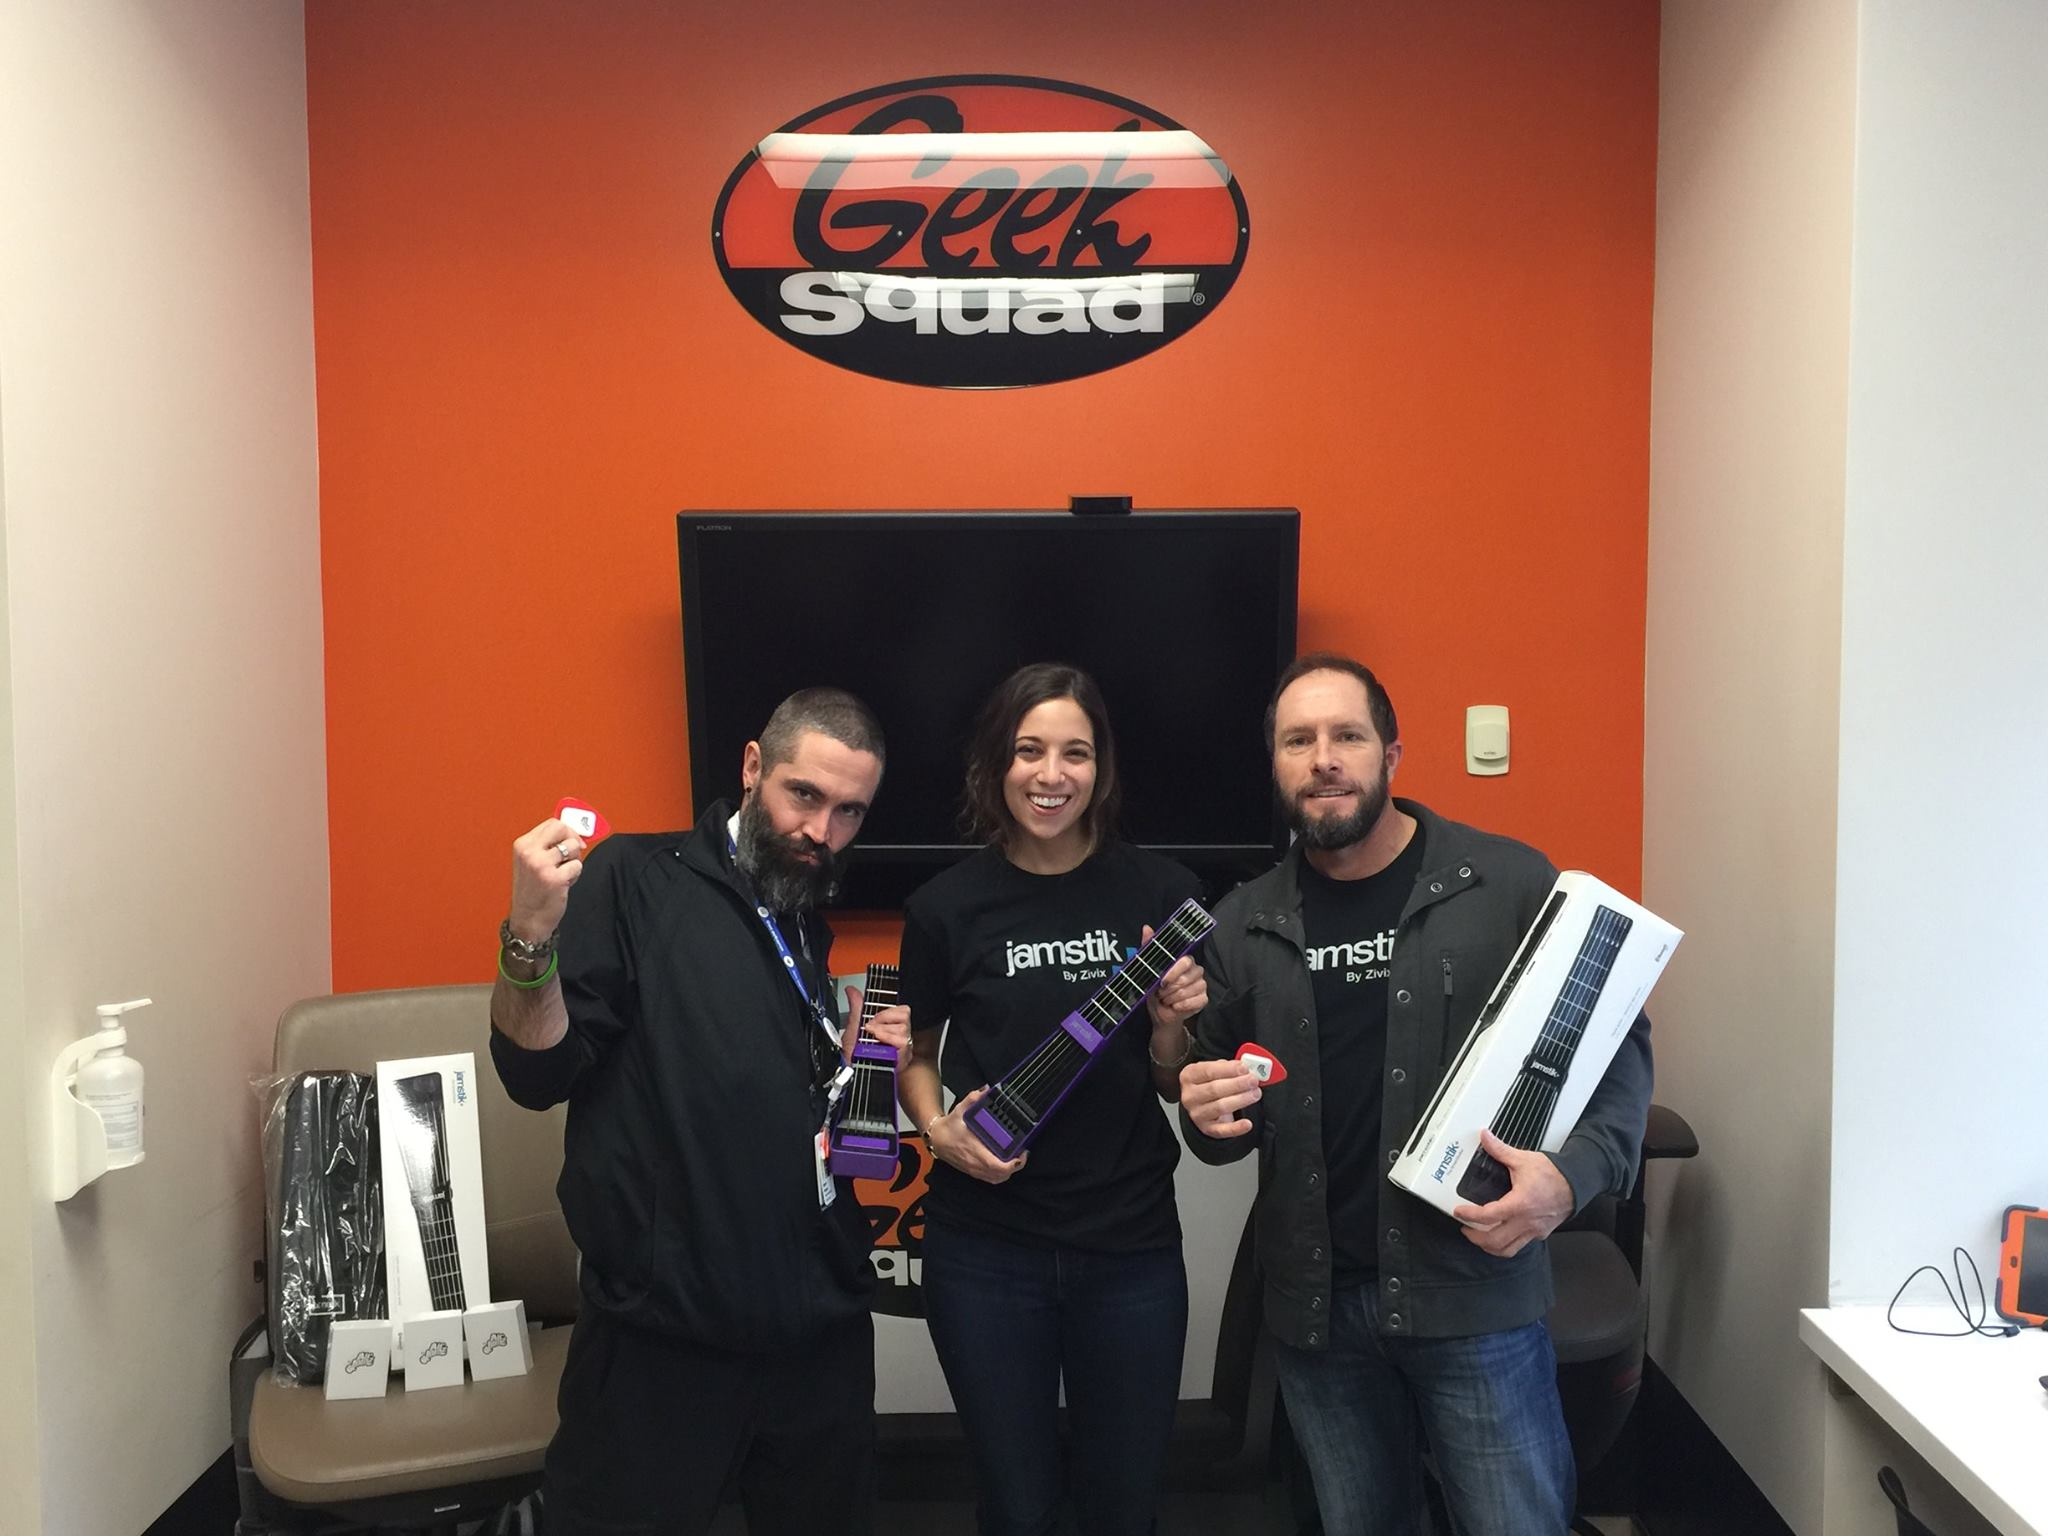 (From left to right: Elliot Nelson - Geek Squad, Meredith Cannon - Zivix , Chad Koehler - Zivix)